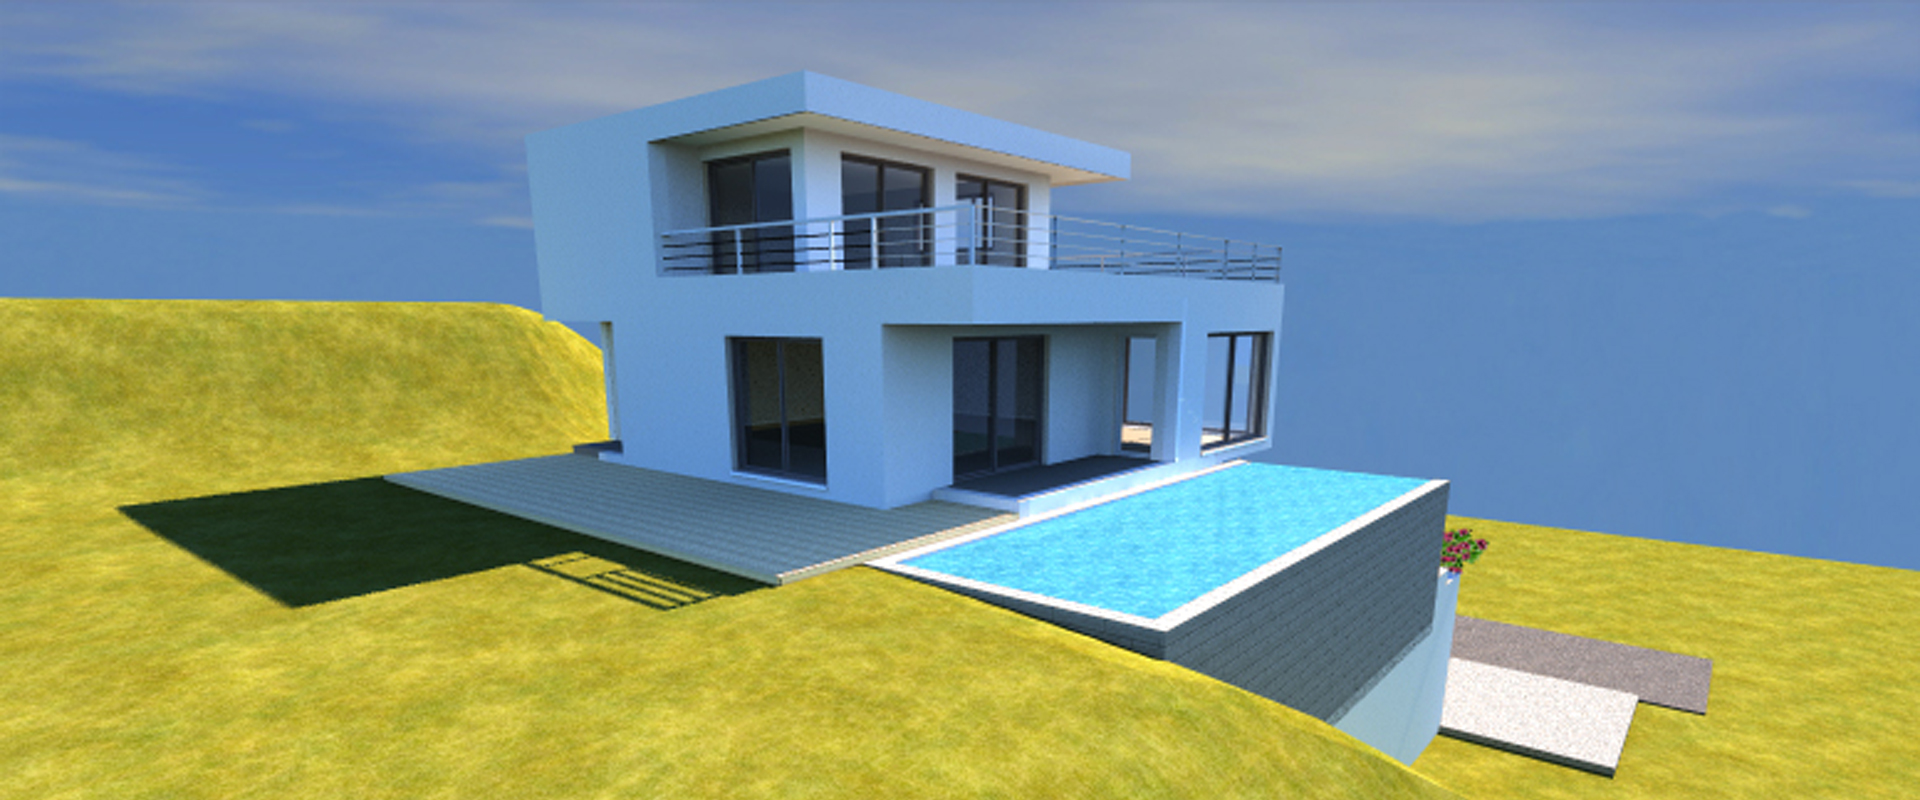 Conception 3d d un plan de maison avec piscine d bordement for Maison avec piscine a debordement